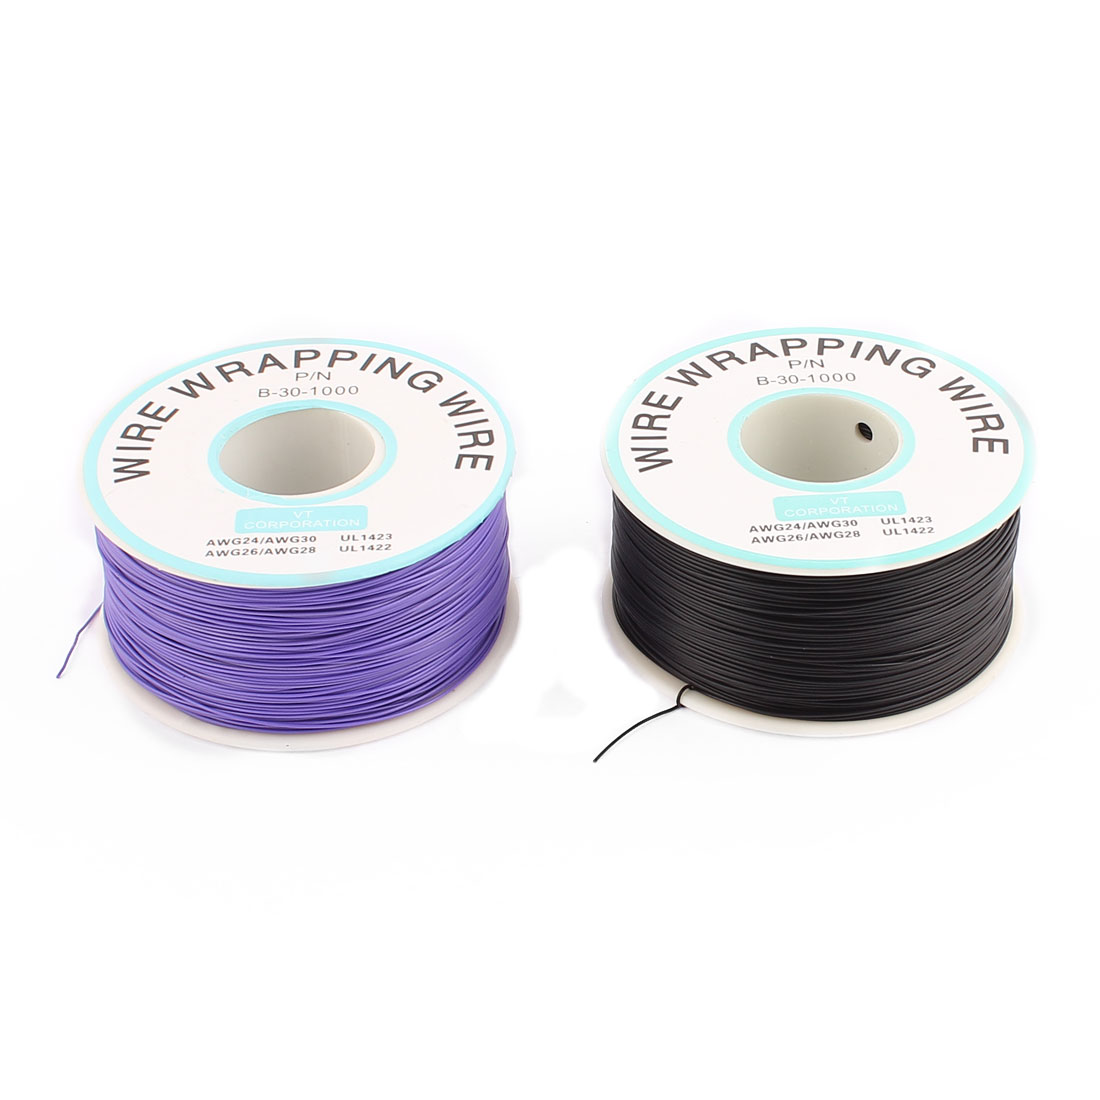 2 Pcs High Temperature Resistant Wraping Wire B-30-1000 Black and Purple